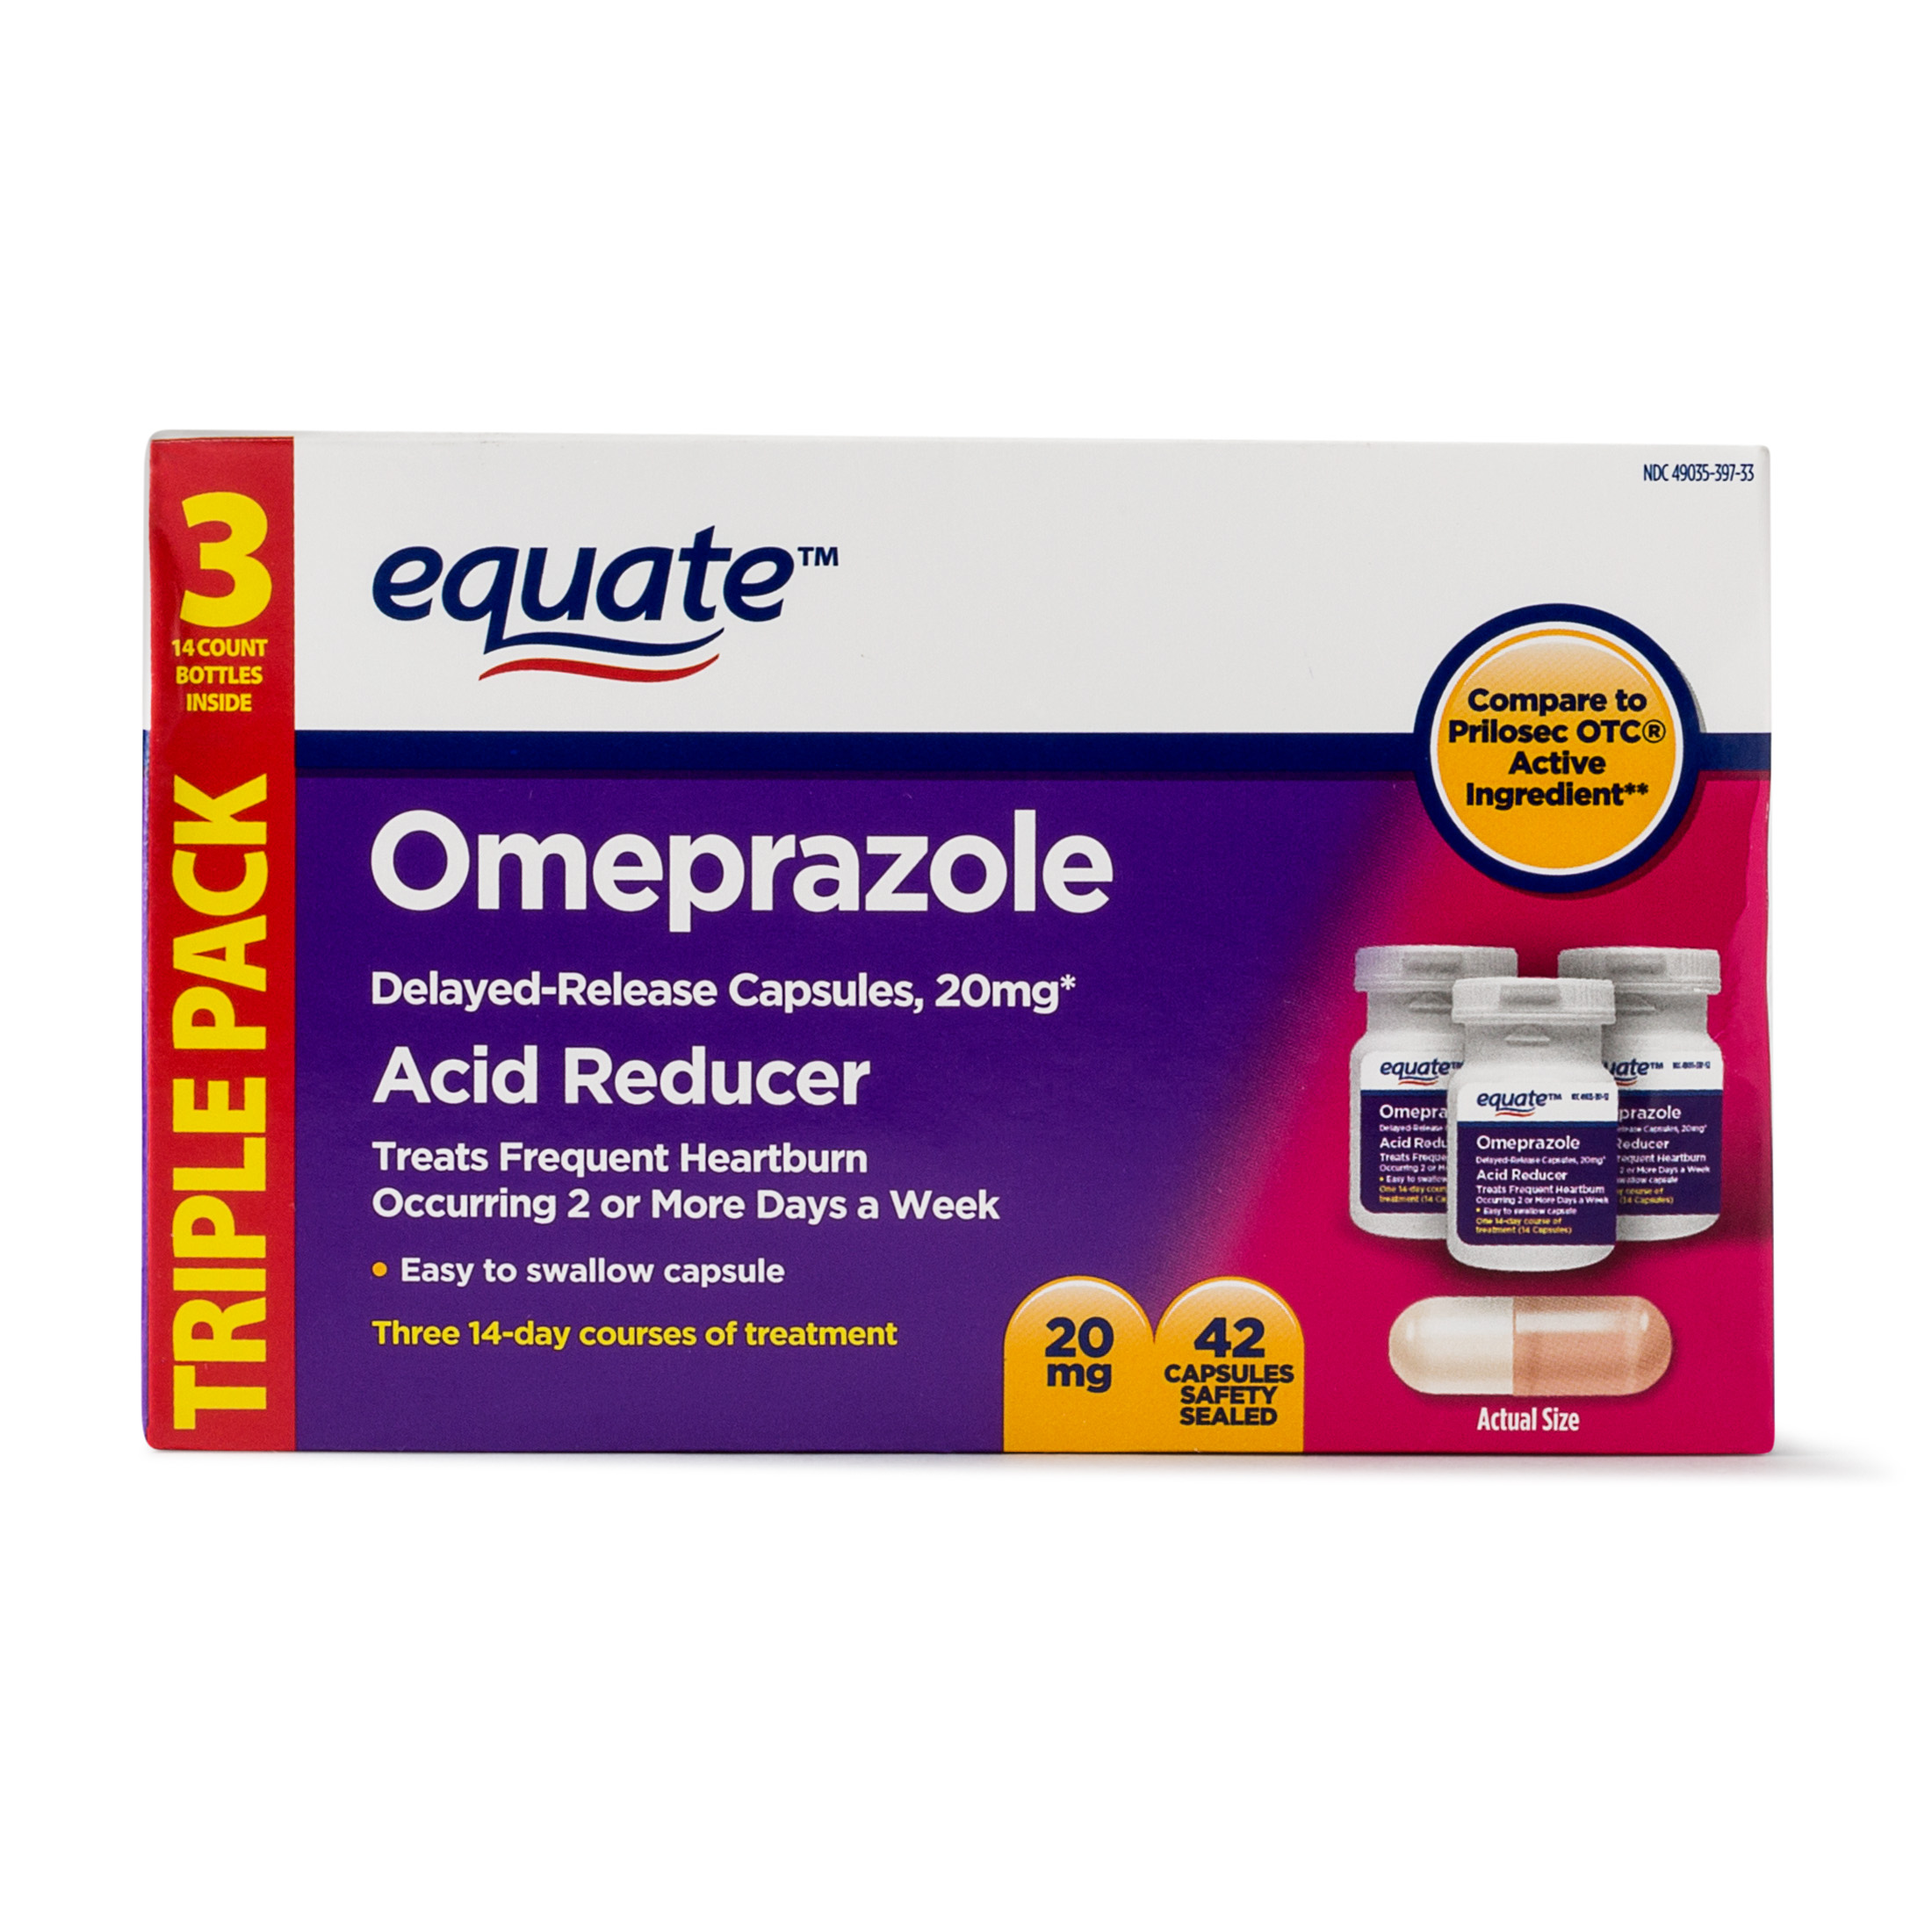 Equate Acid Reducer Omeprazole Capsules, 20.6 mg, 42 Ct, 3 Pk